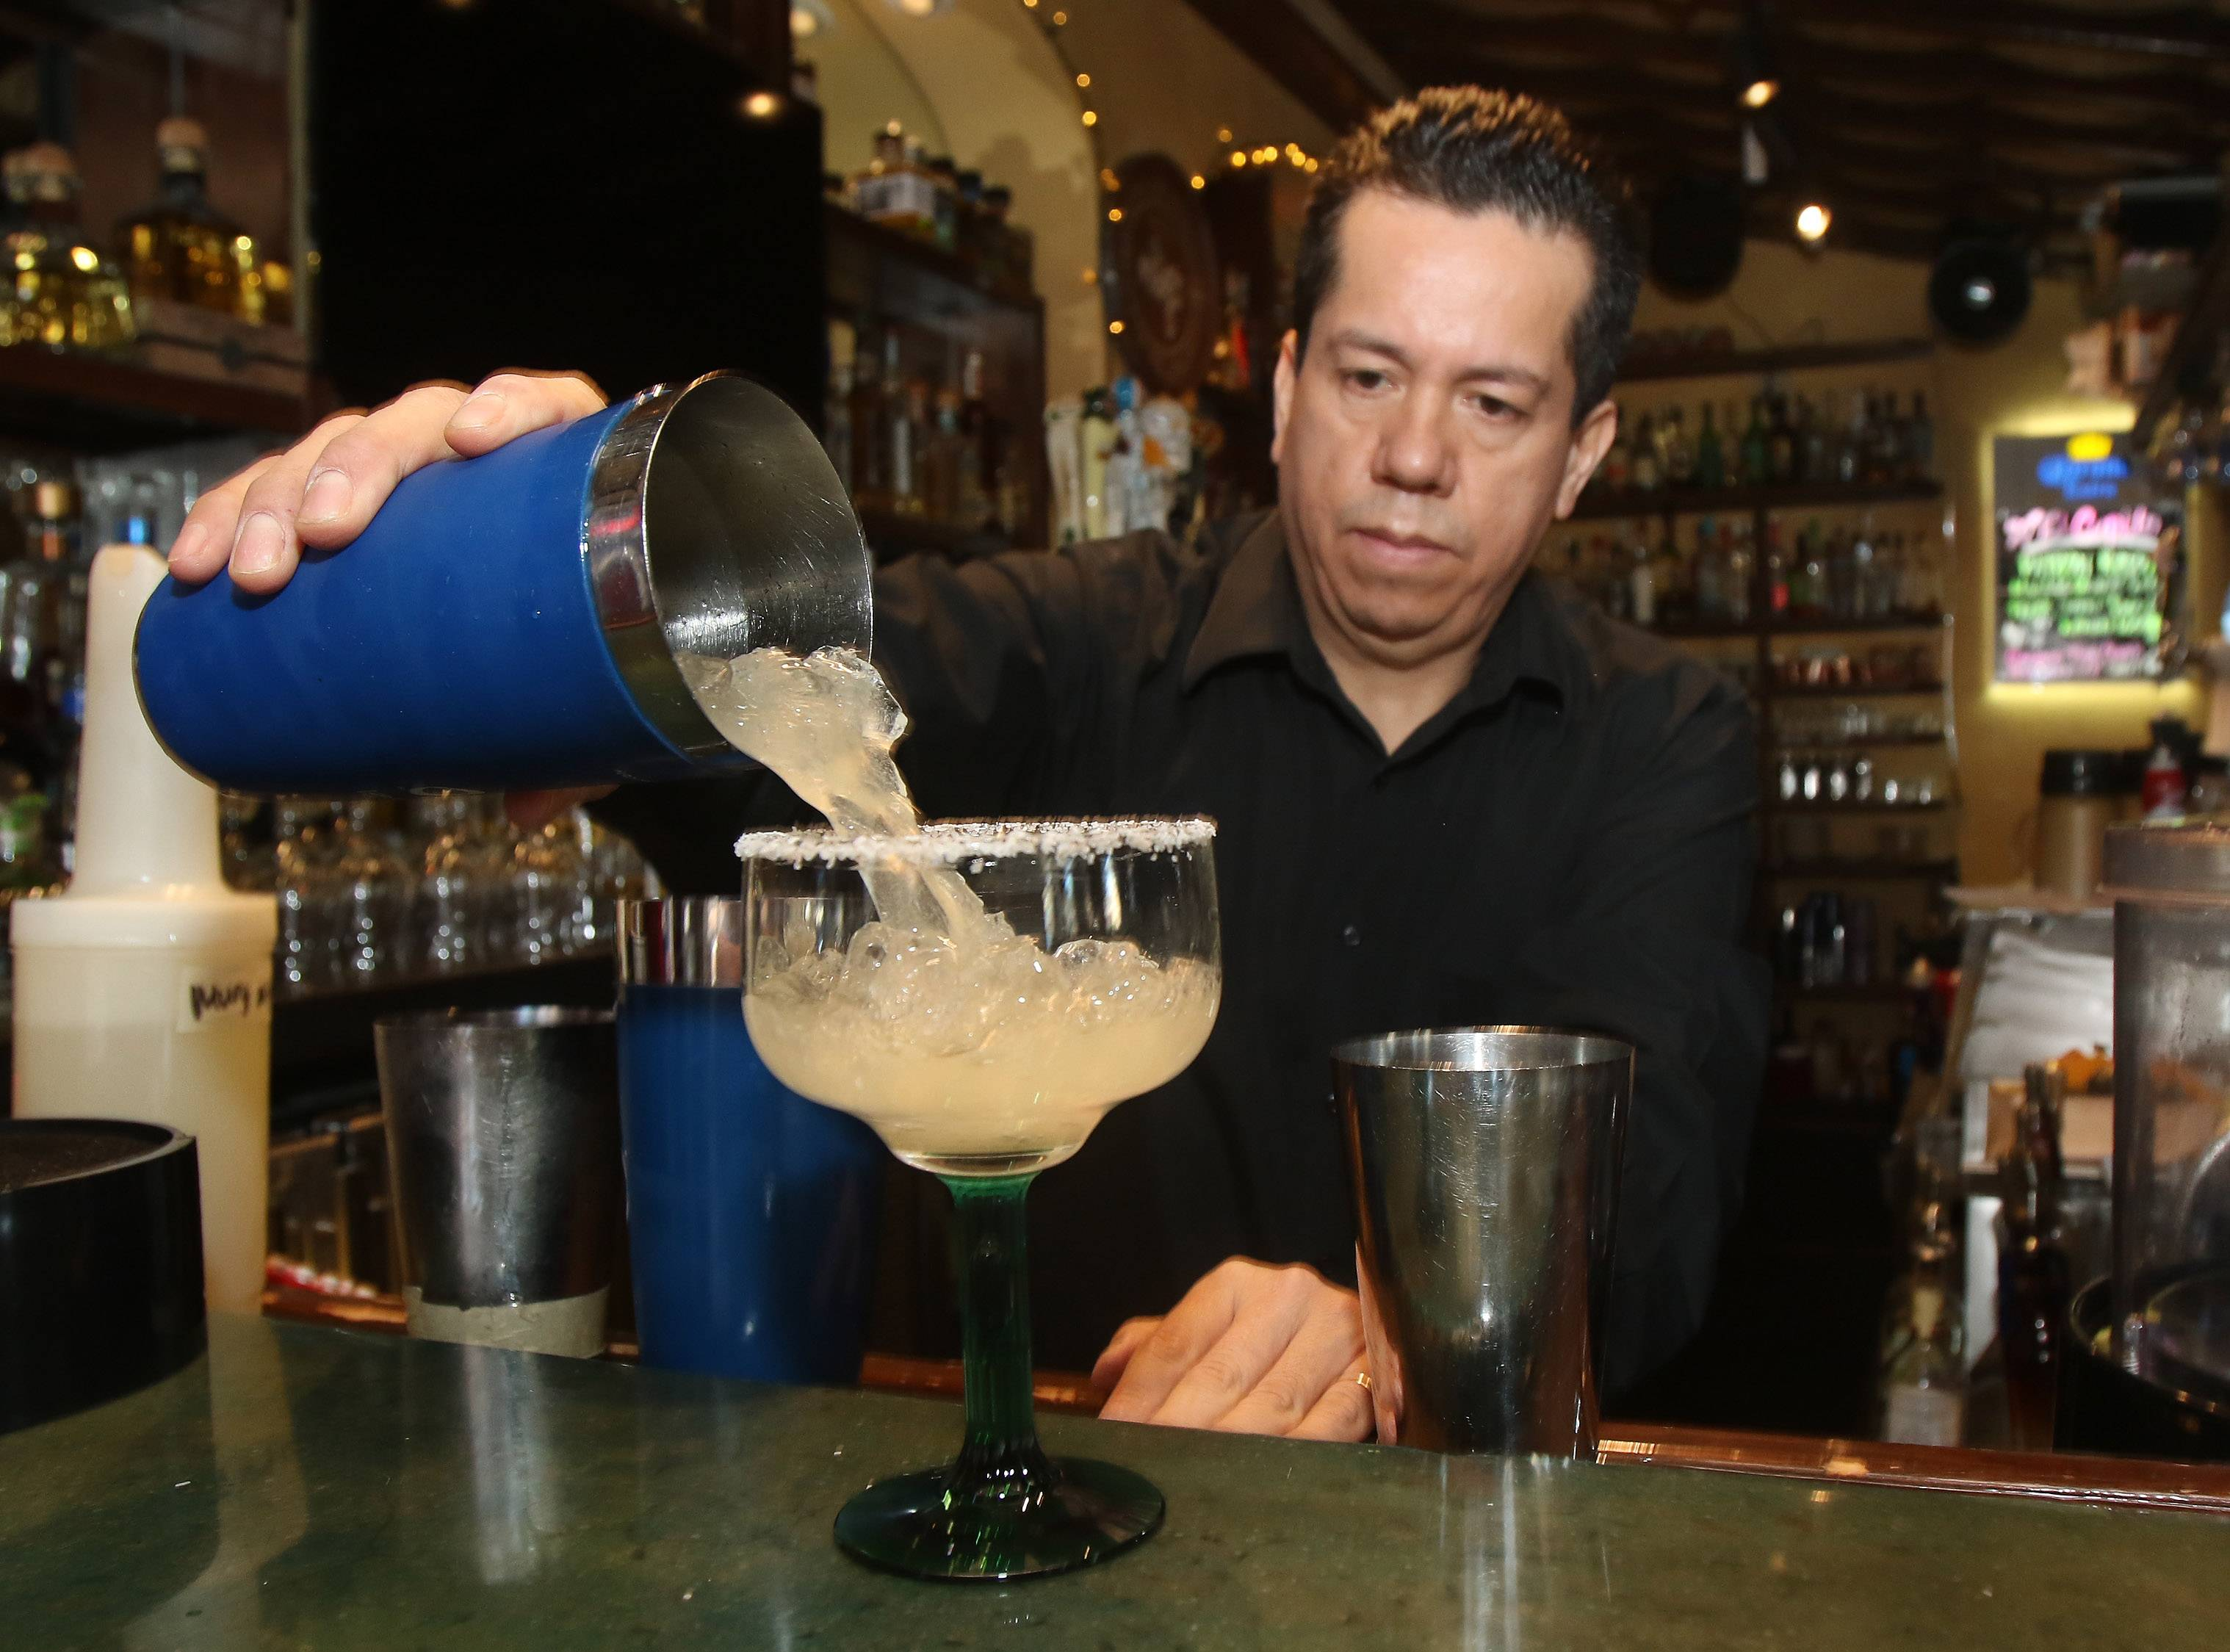 Bartender/mixologist Amado Navarrete makes a Casa Bonita margarita at the Libertyville restaurant.